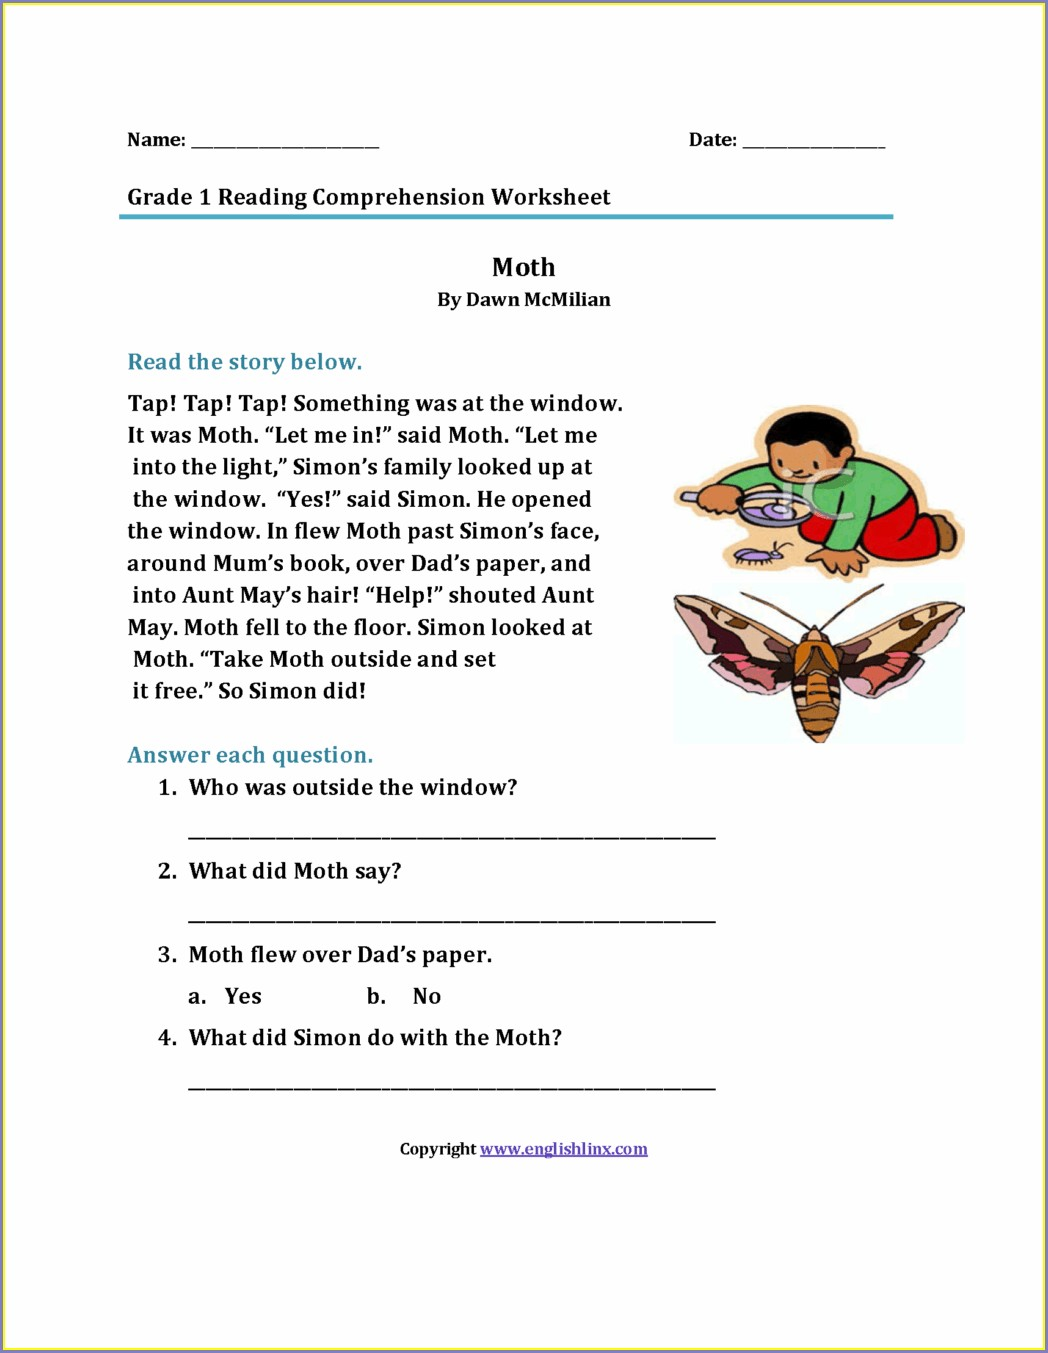 Printable Reading Comprehension Worksheets For 1st Grade